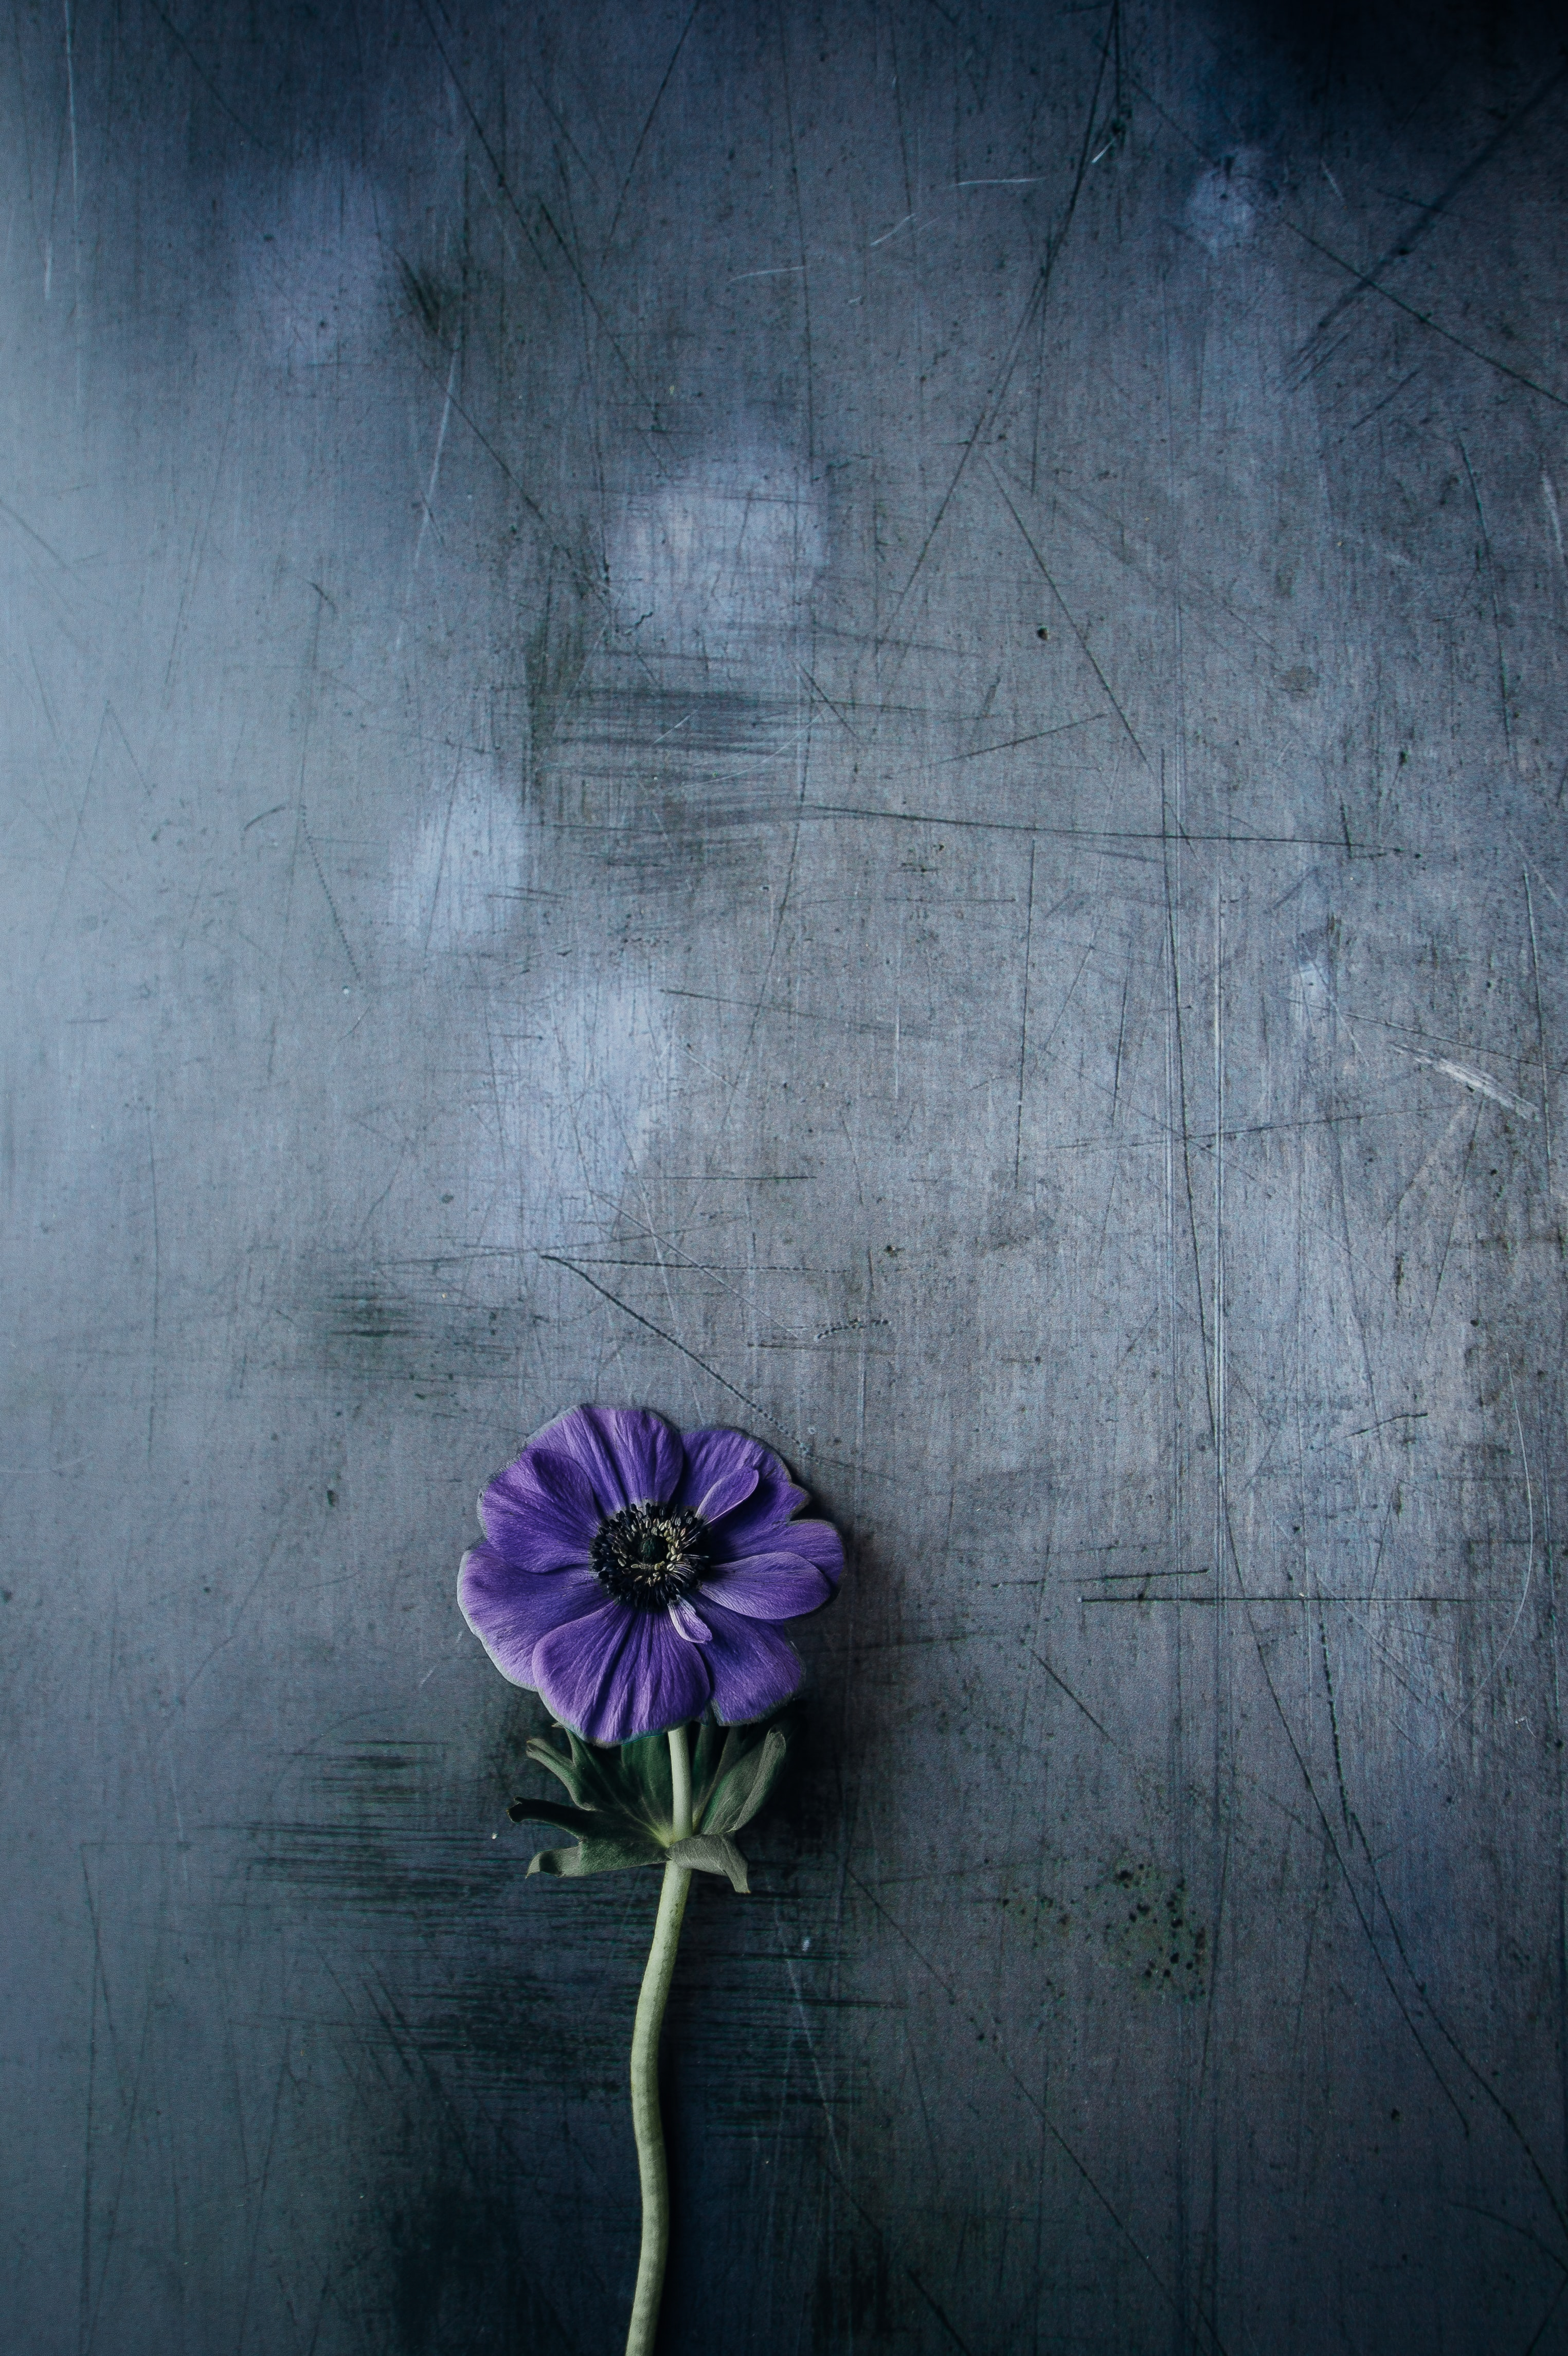 purple petaled flower on gray surface